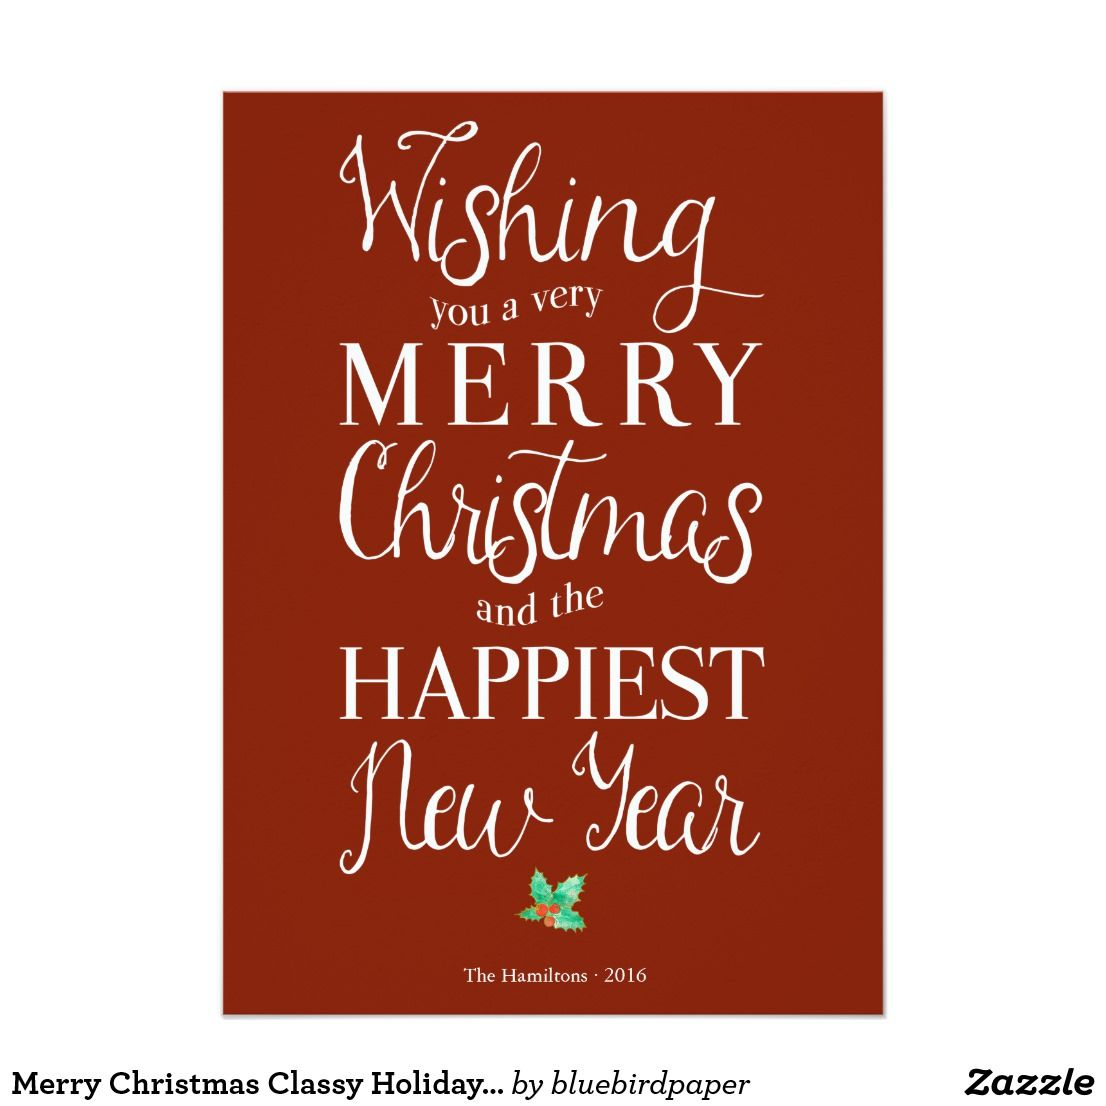 Merry christmas classy holiday photo greeting card photo greeting merry christmas classy holiday photo greeting card m4hsunfo